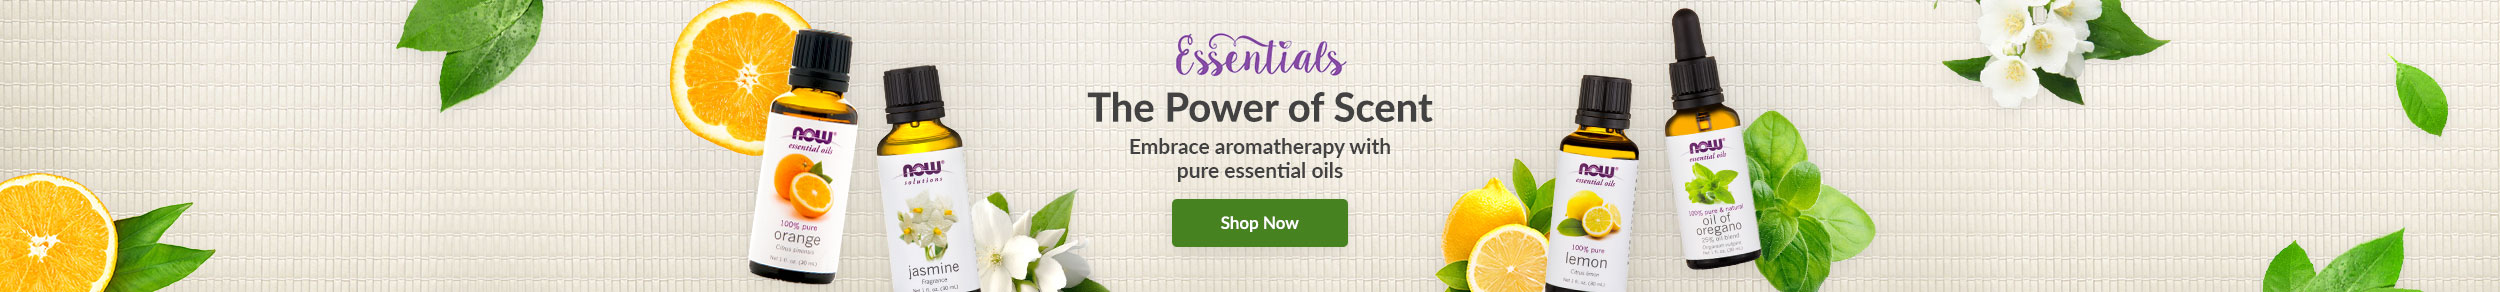 https://i3.pureformulas.net/images/static/Essentials-The-Power-of-Scent_Beauty-3_091918.jpg